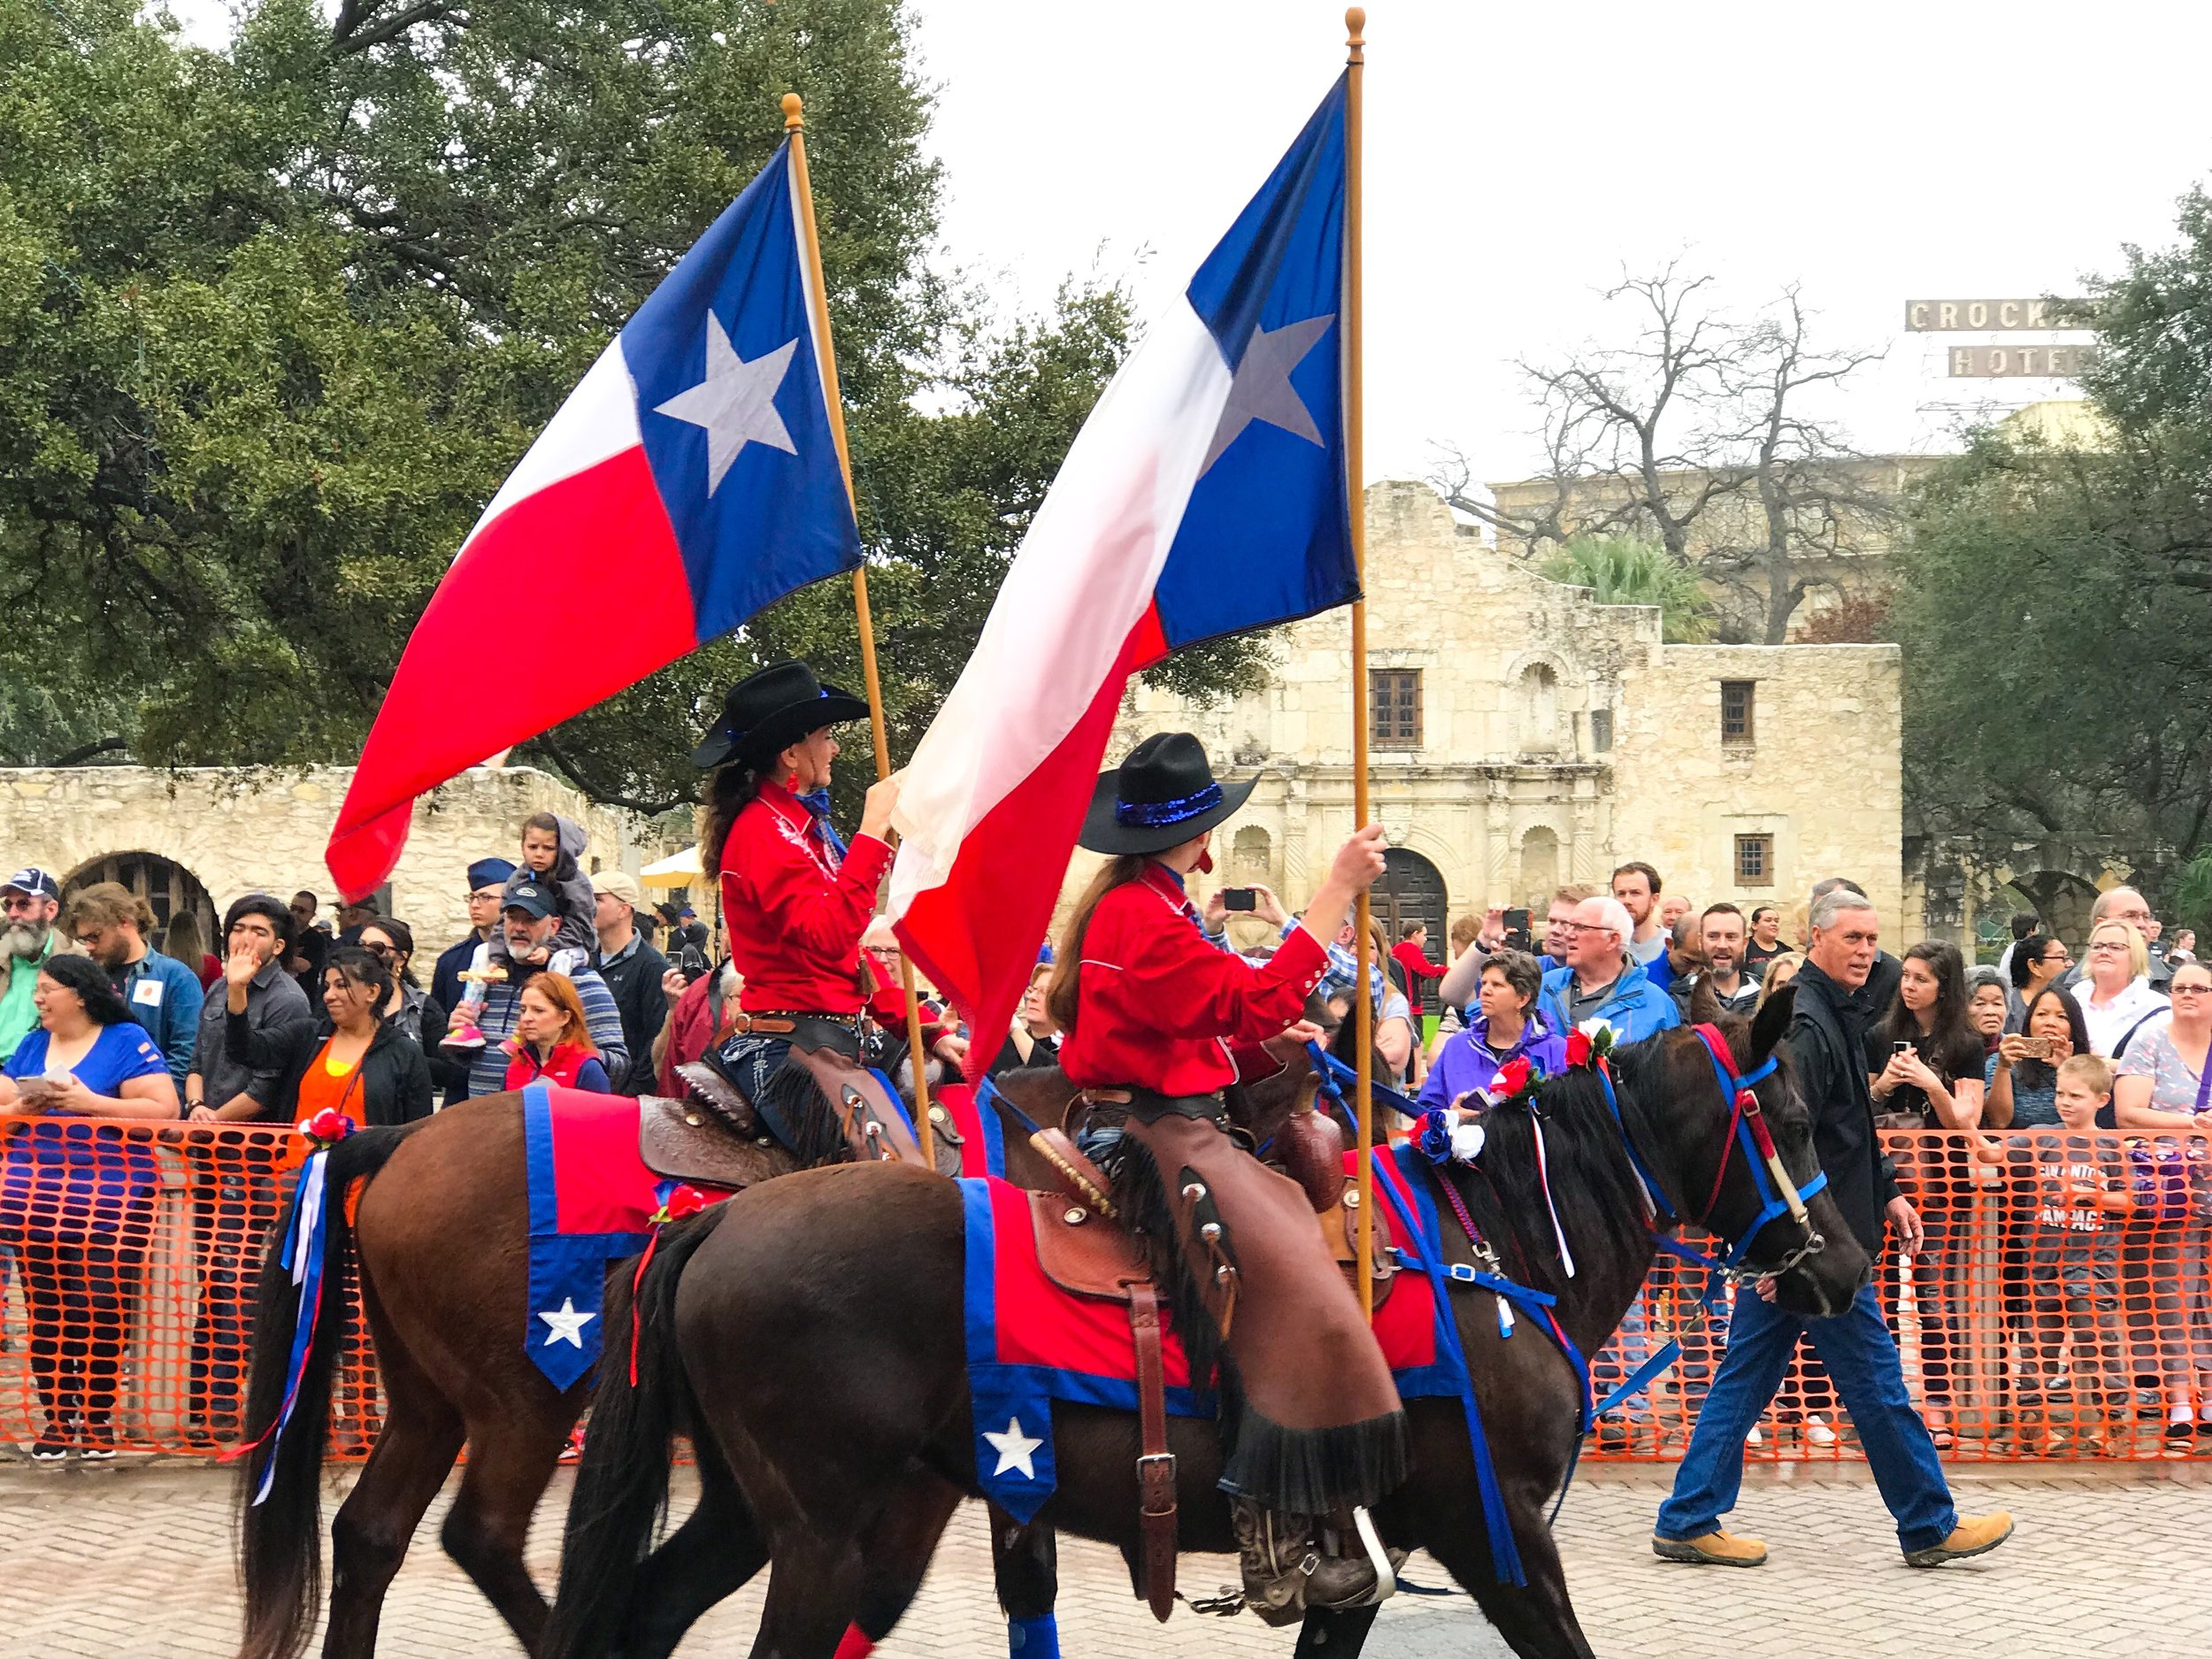 WESTERN HERITAGE PARADE & CATTLE DRIVE - Kick-off event of the annual San Antonio Stock Show & Rodeo in early February